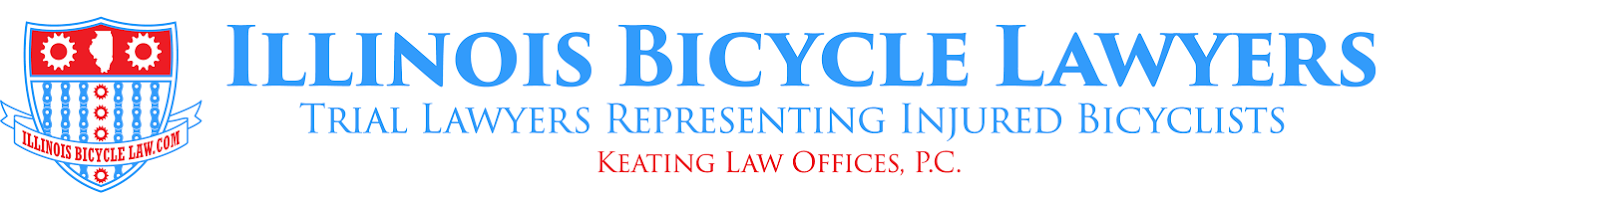 ILLINOIS BICYCLE LAWYERS Chicago, Illinois Bike Accident Injury Attorneys Top In Illinois